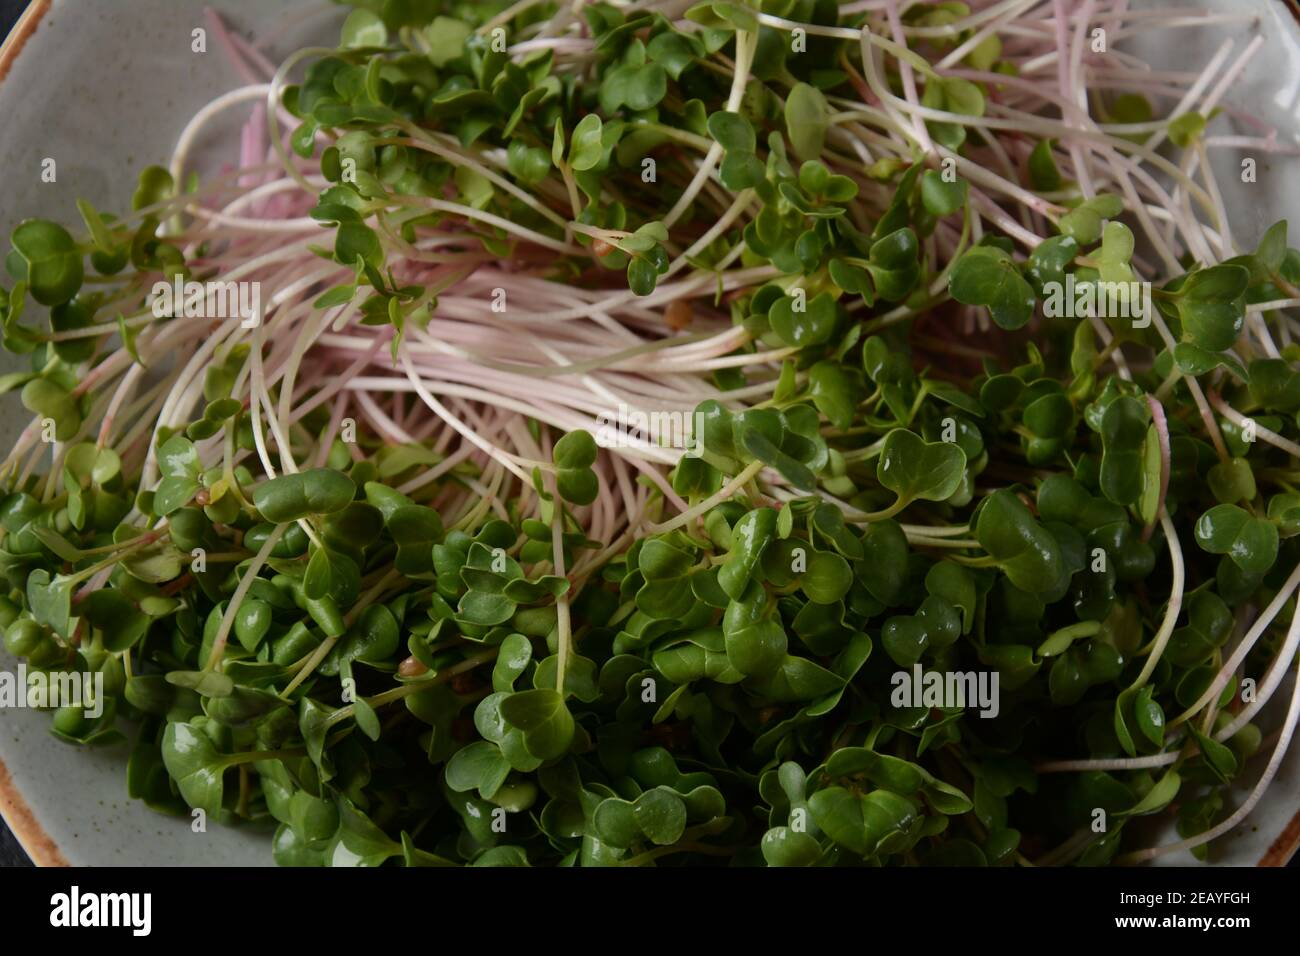 Radish Sprouts in wooden bowl. Japanese or oriental radish and true daikon. Stock Photo